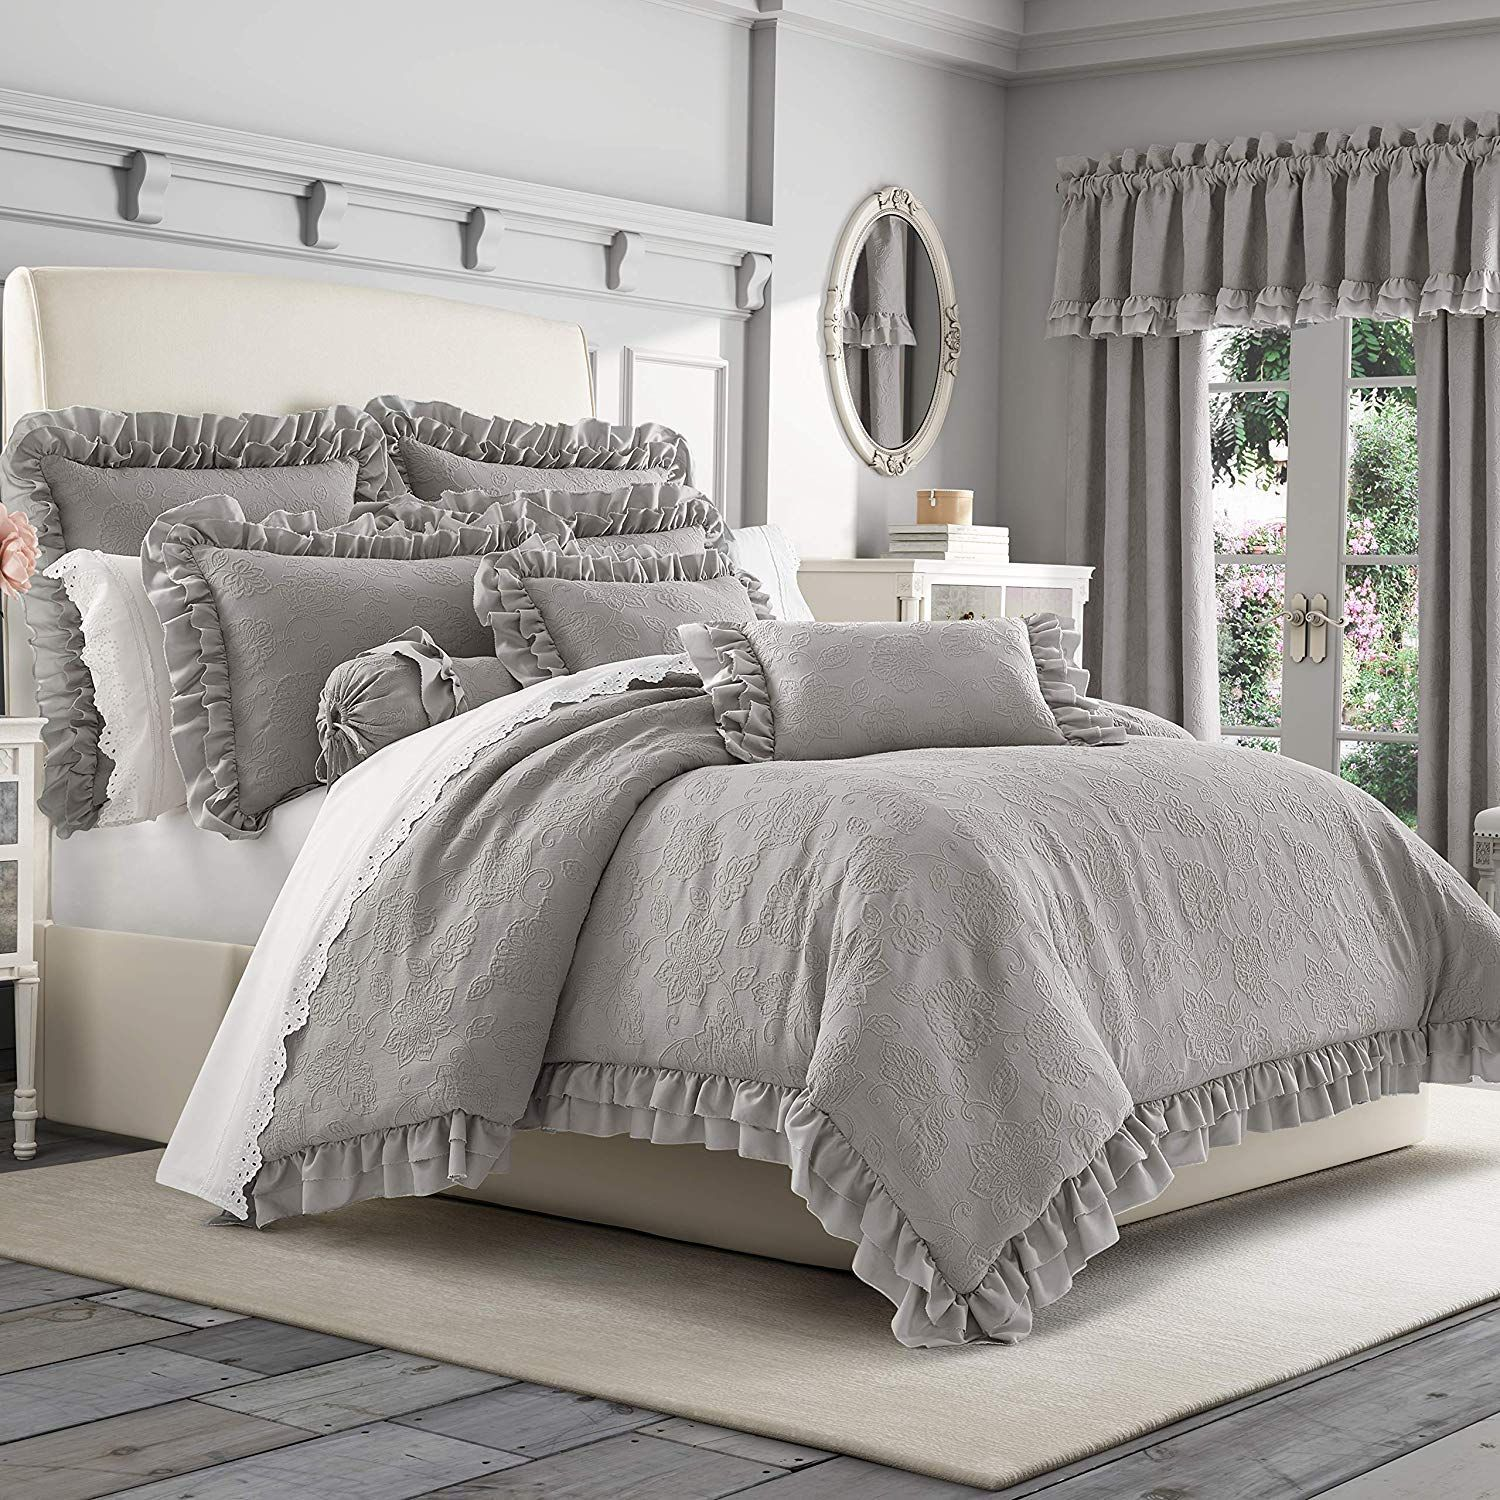 Farmhouse Comforters Rustic Comforters Farmhouse Goals In 2020 Comforter Sets Stylish Bedroom Decor King Comforter Sets